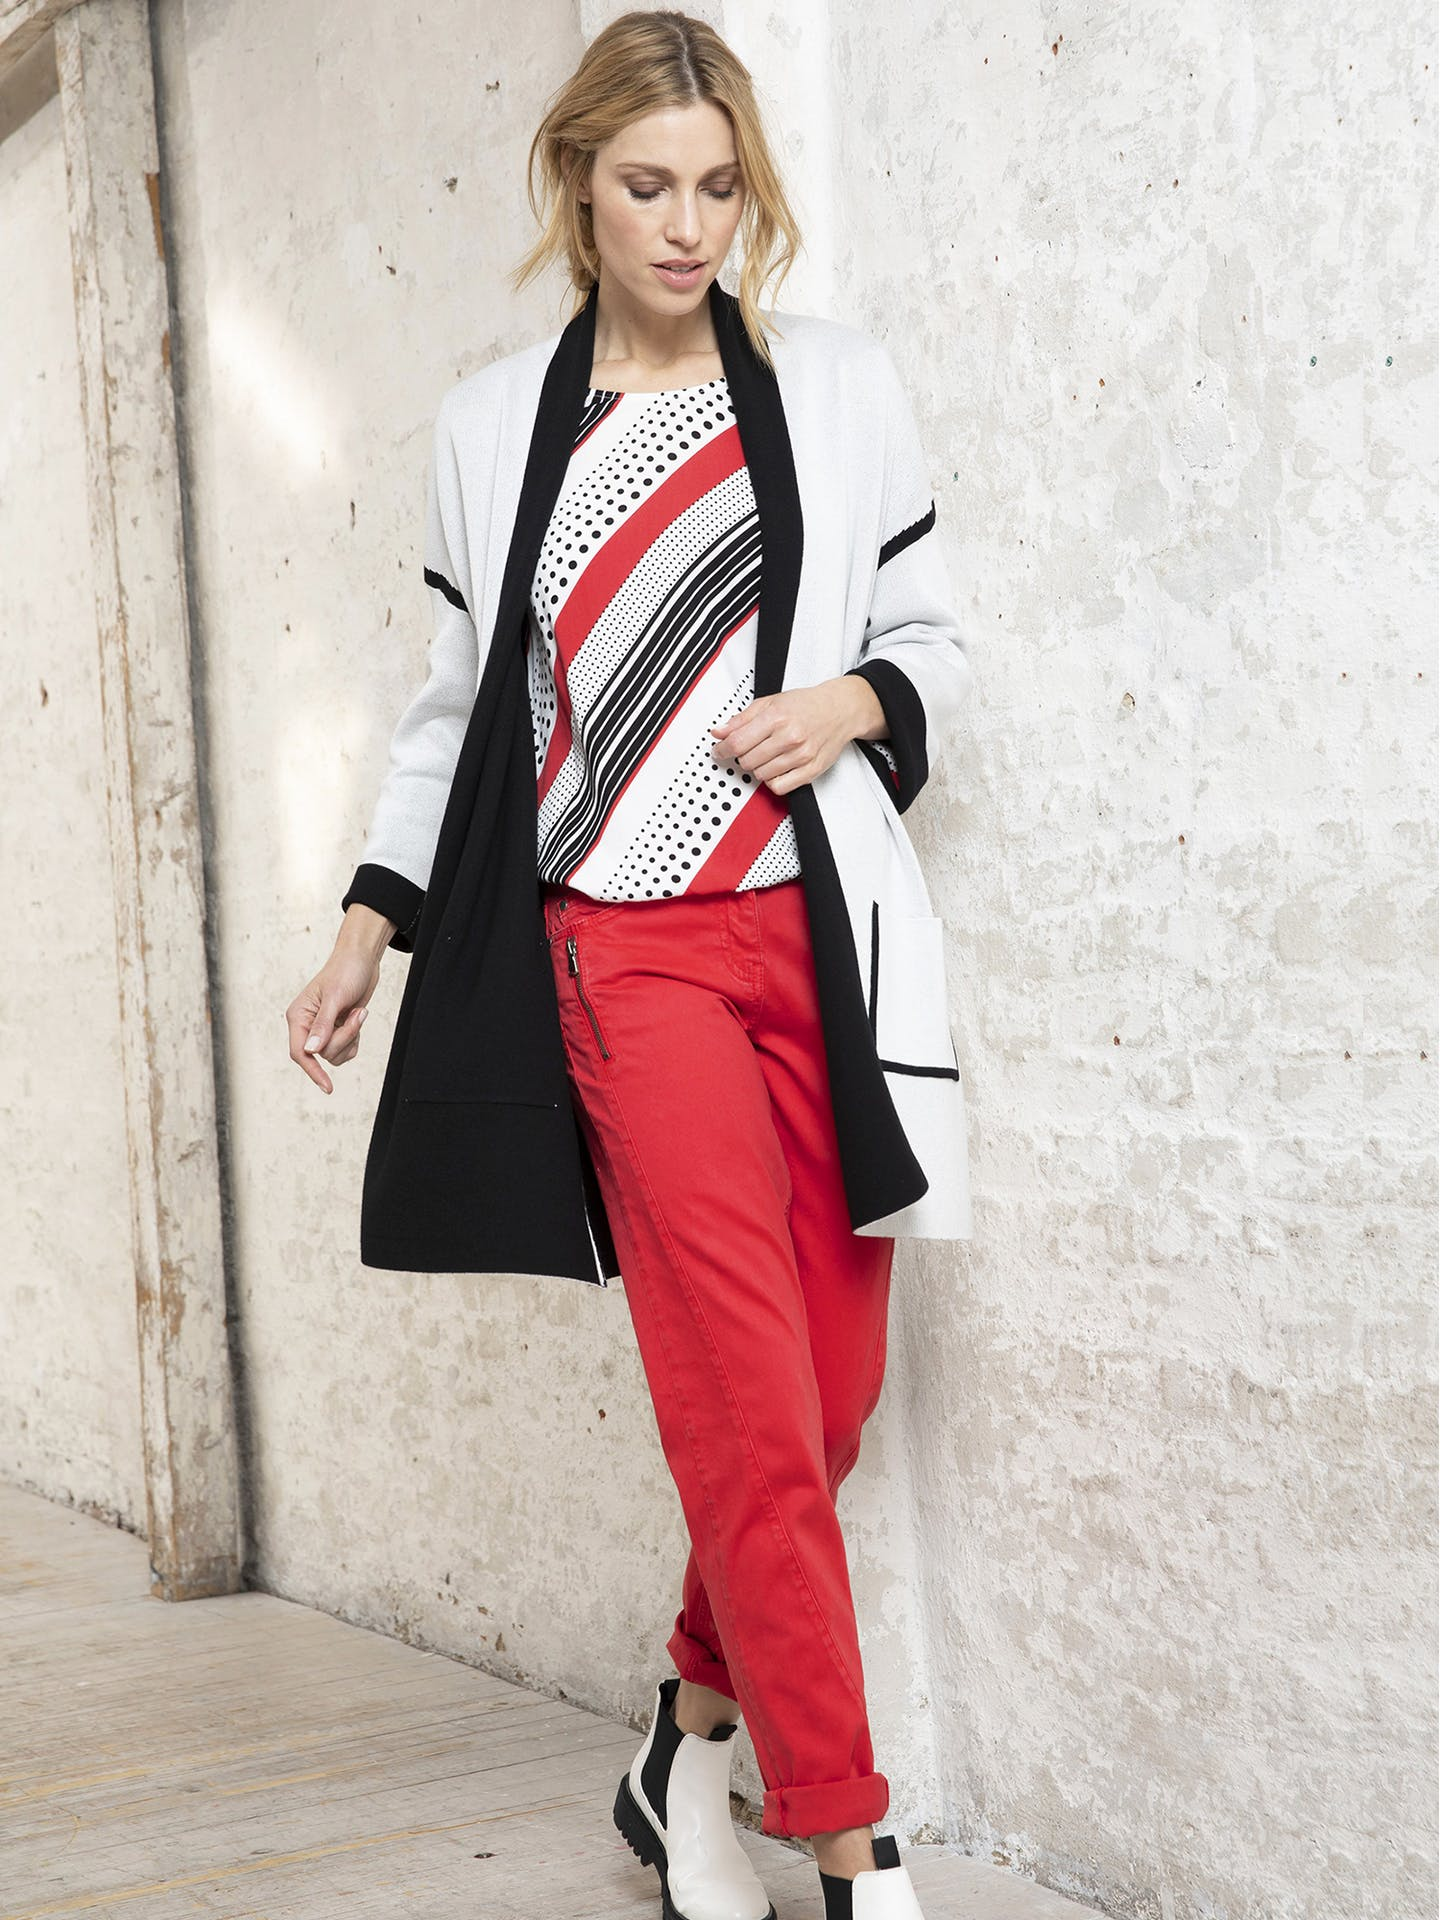 Styling-Tipps